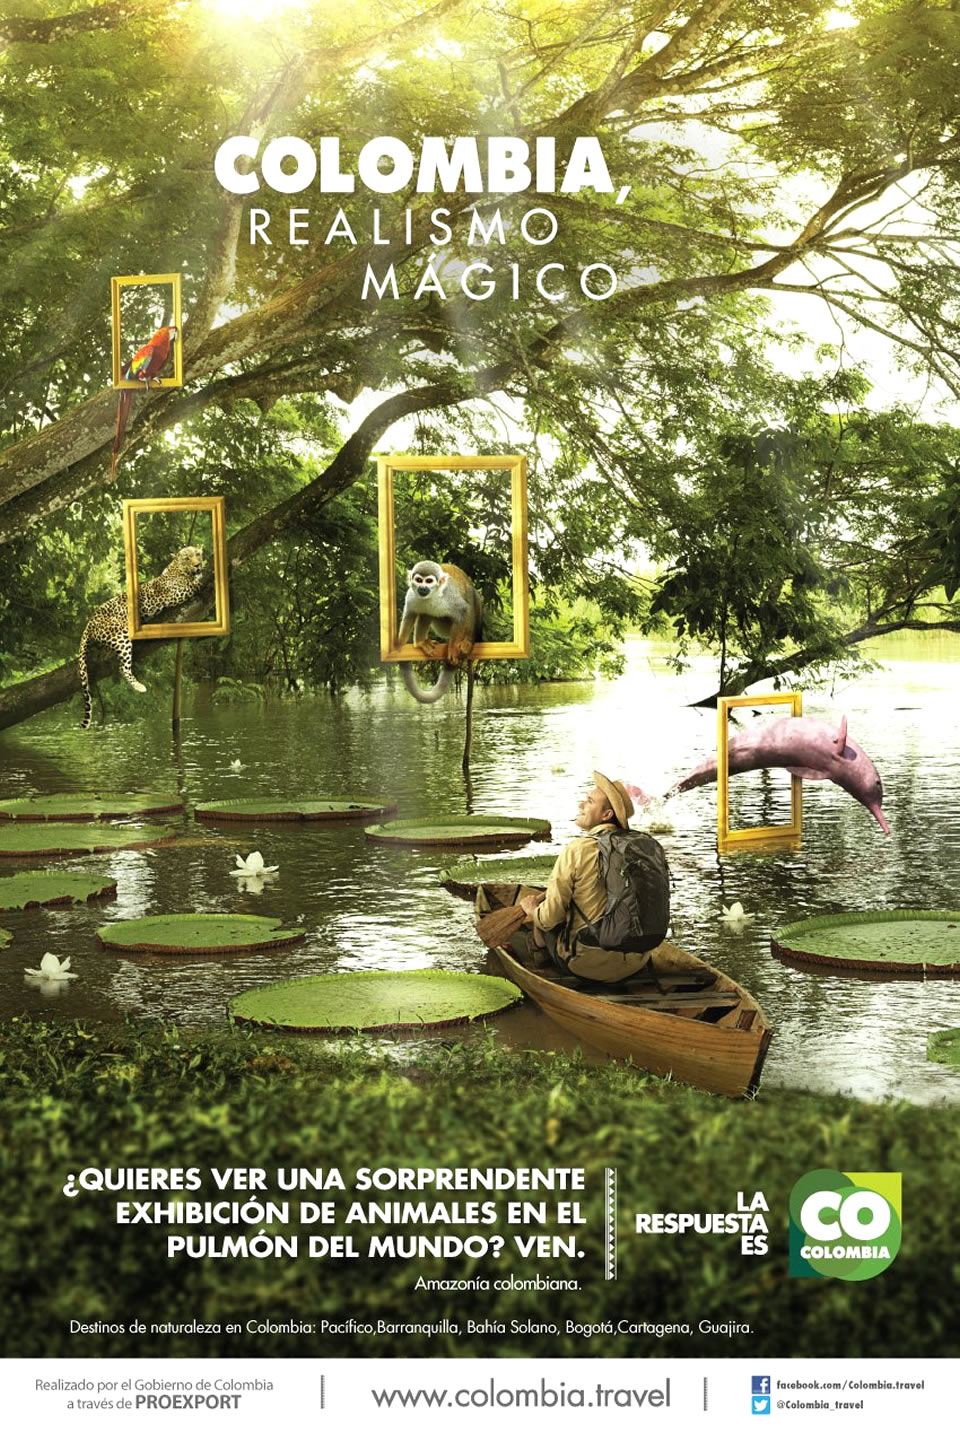 Amazonia Tourism Advertisement Poster of Colombia Magical Realism